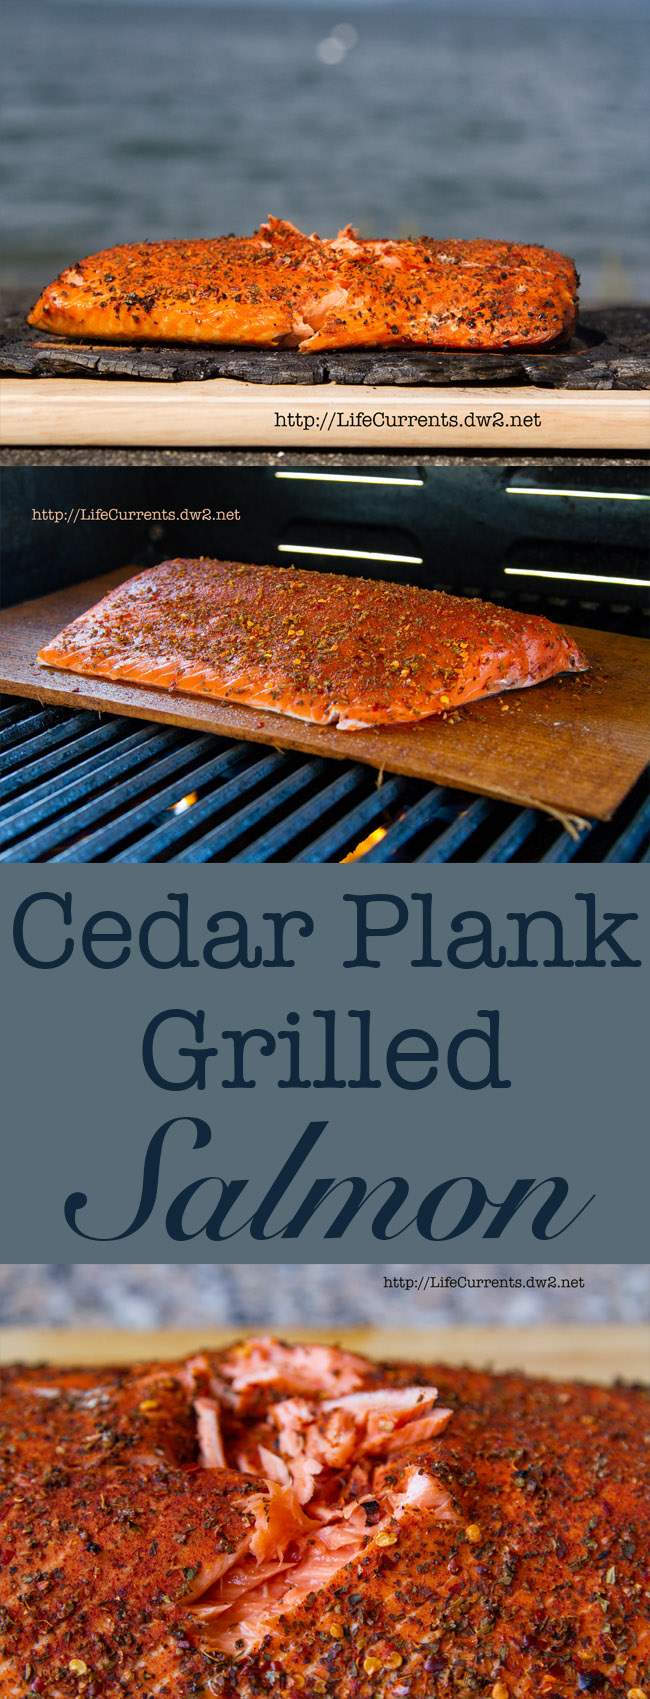 Cedar Plank Grilled Salmon - how to grill salmon on a cedar plank, all the tips and tricks you'll need to create a delicious dinner!